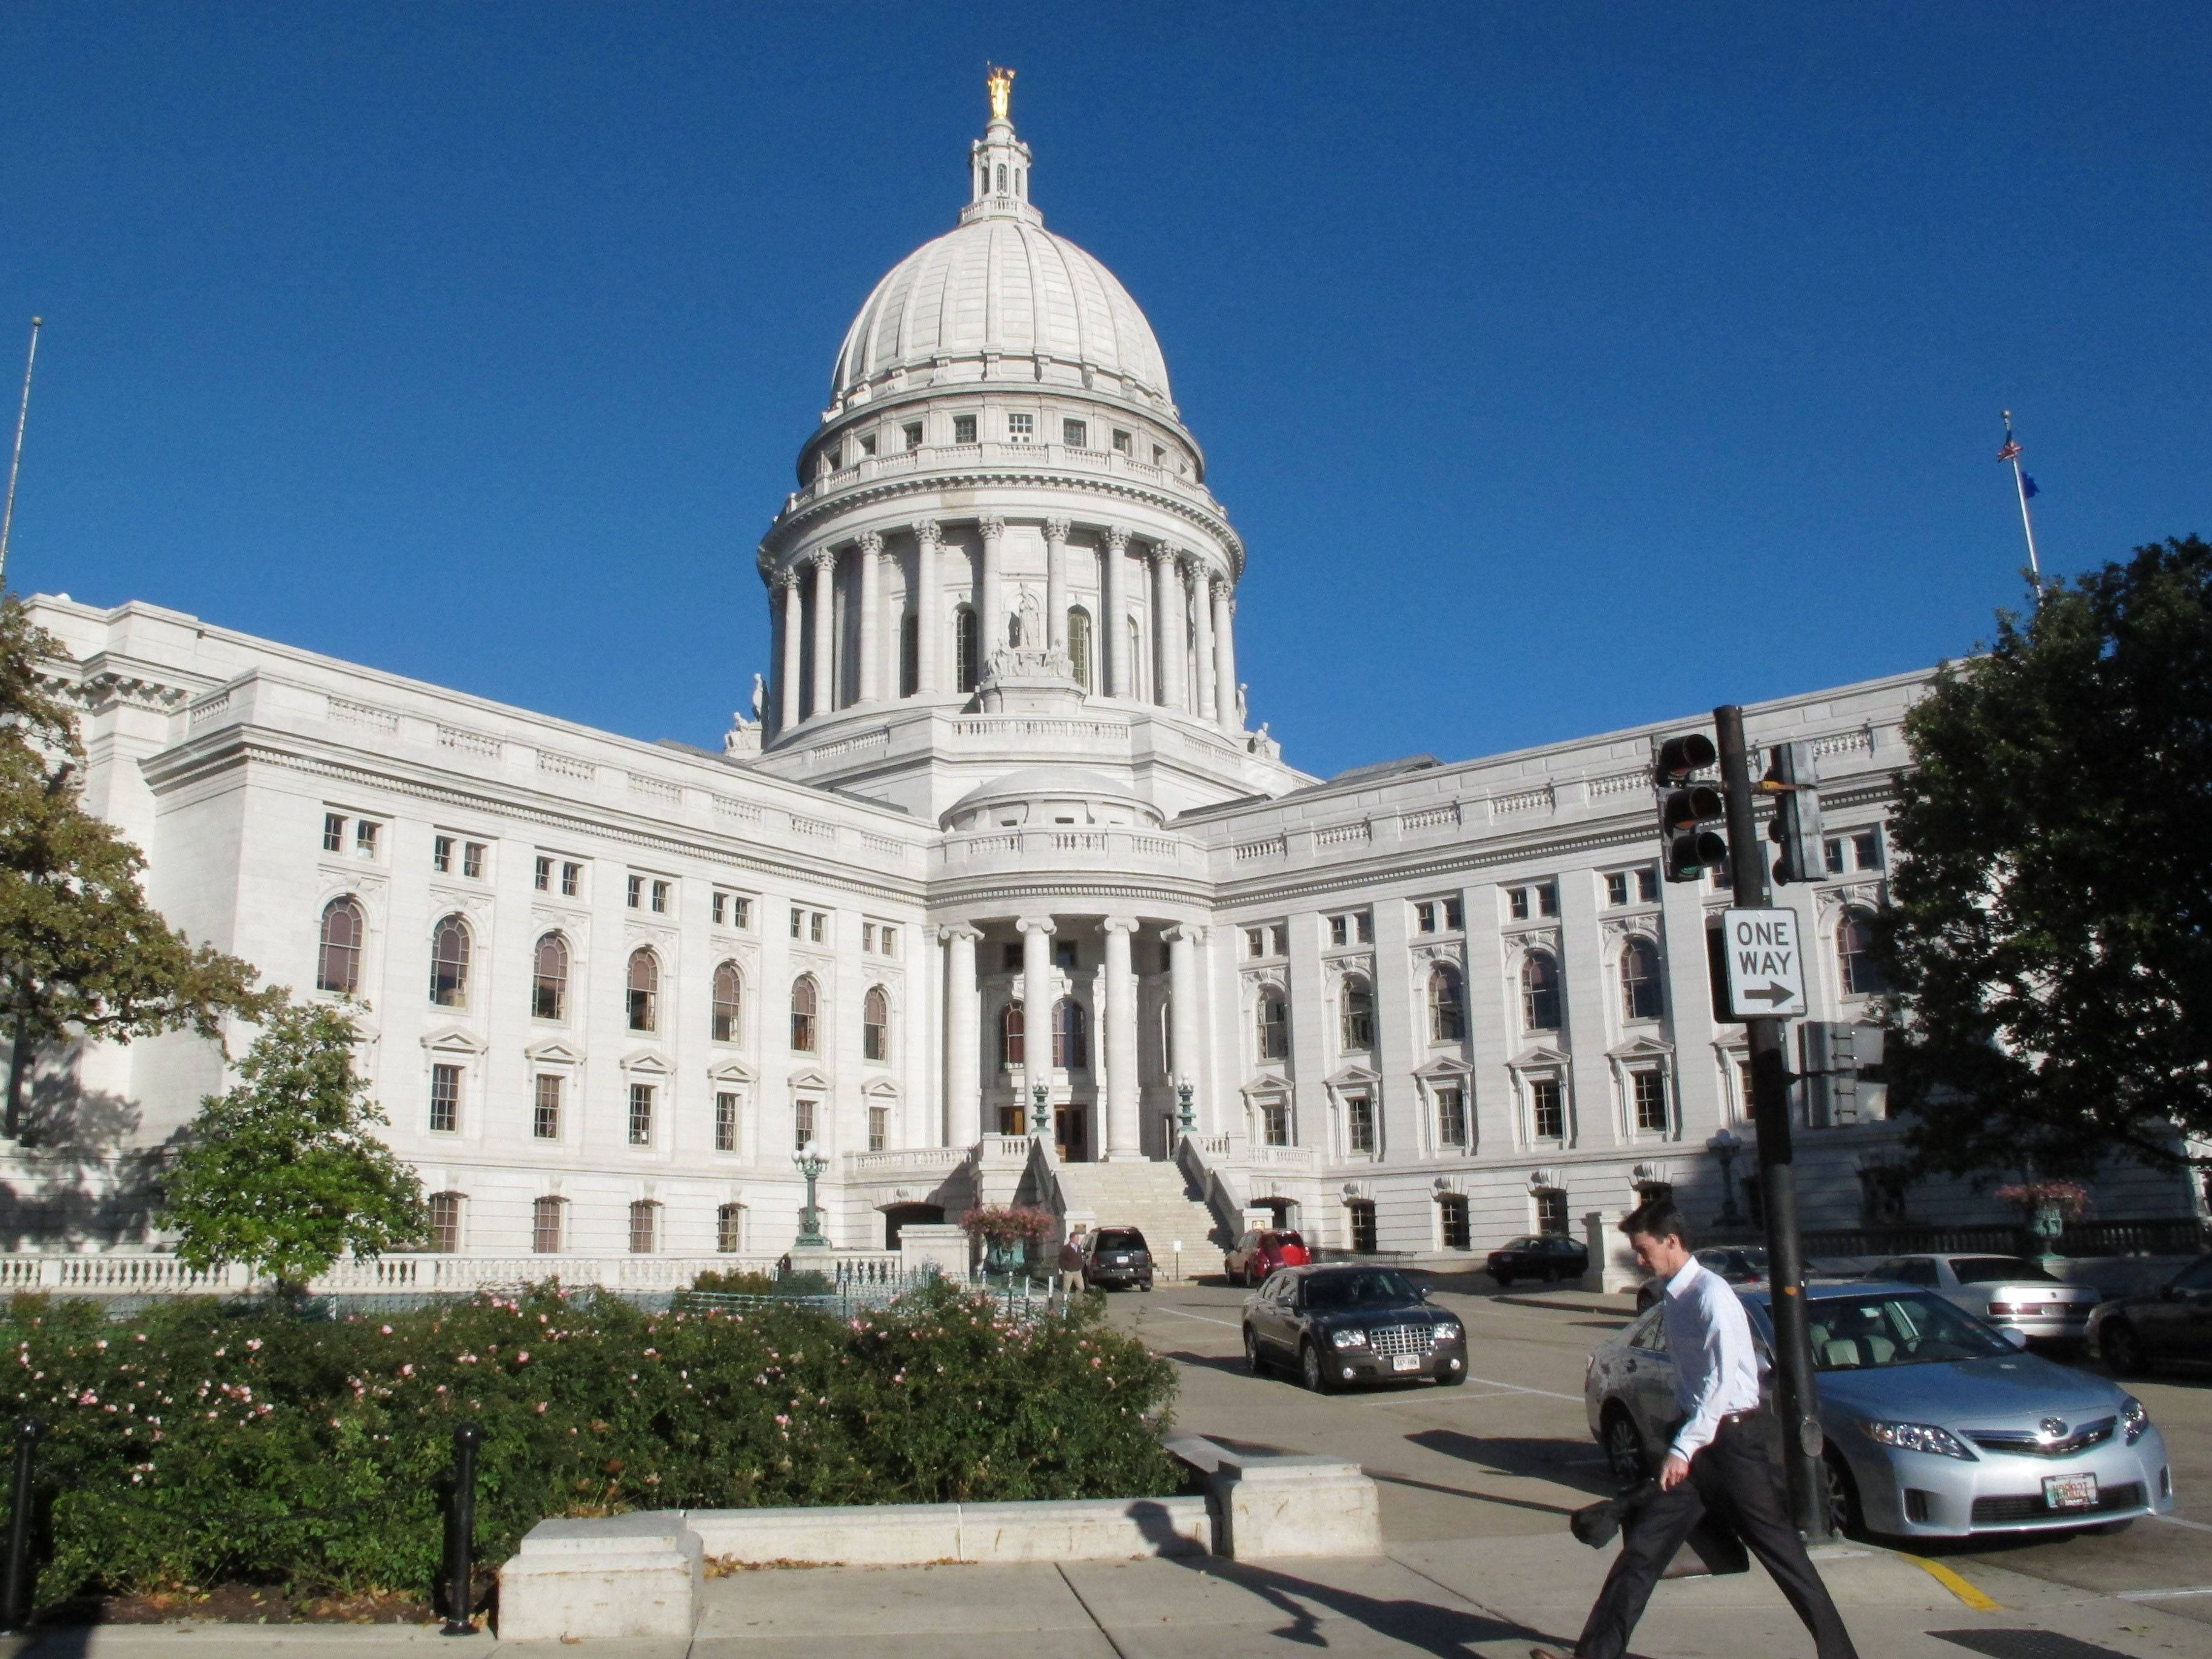 The state Capitol, the highest point of Madison's modest skyline at just over 284 feet, marks both the geographic and cultural center of the city.